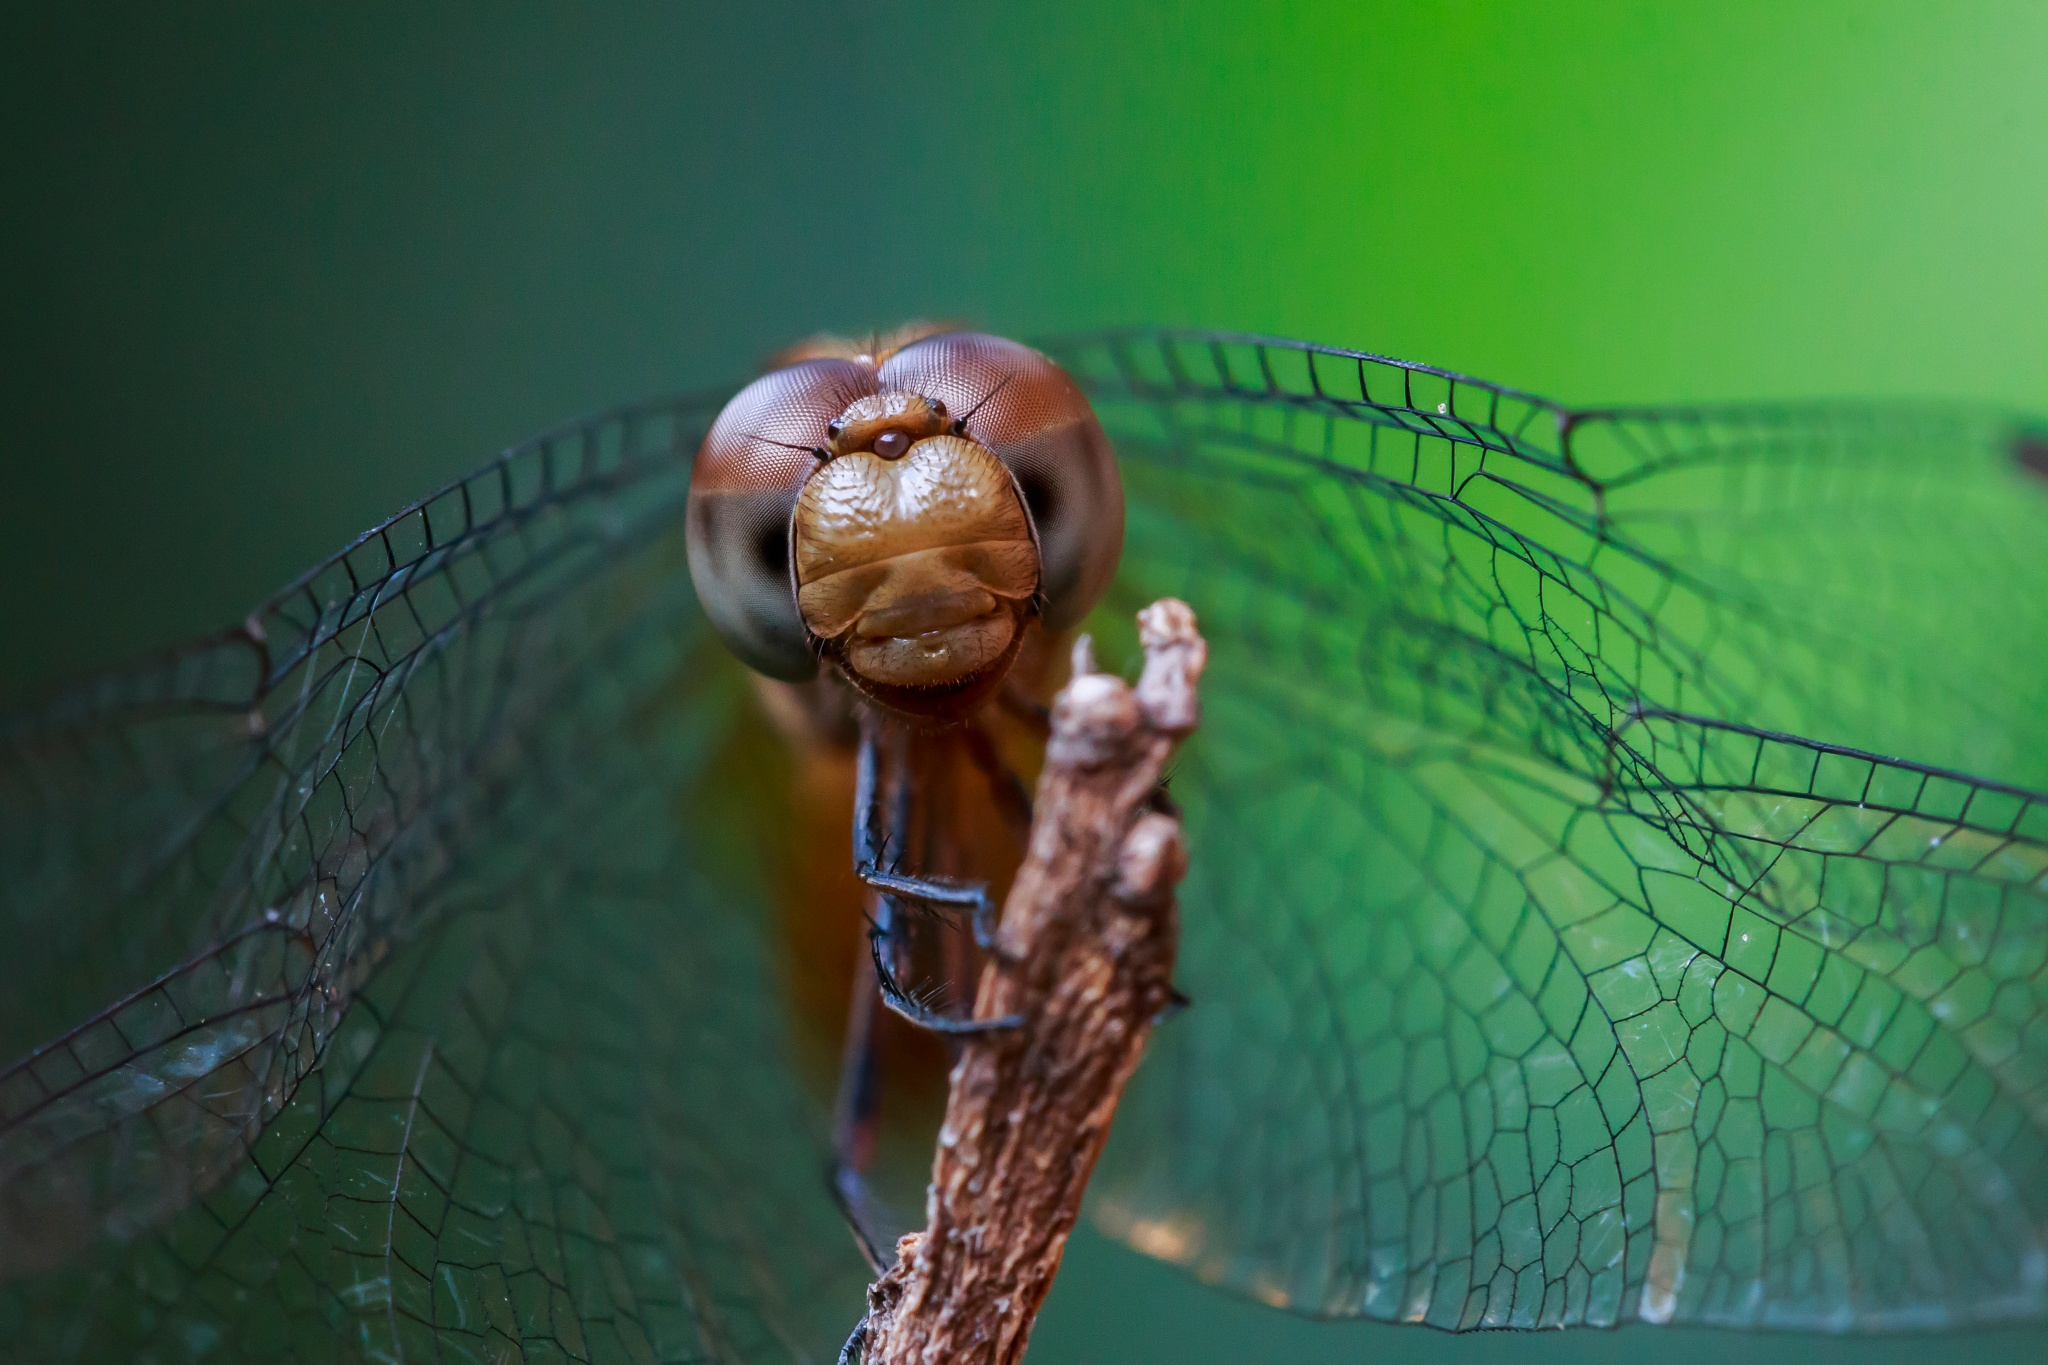 Dragonfly by Sander Freitas